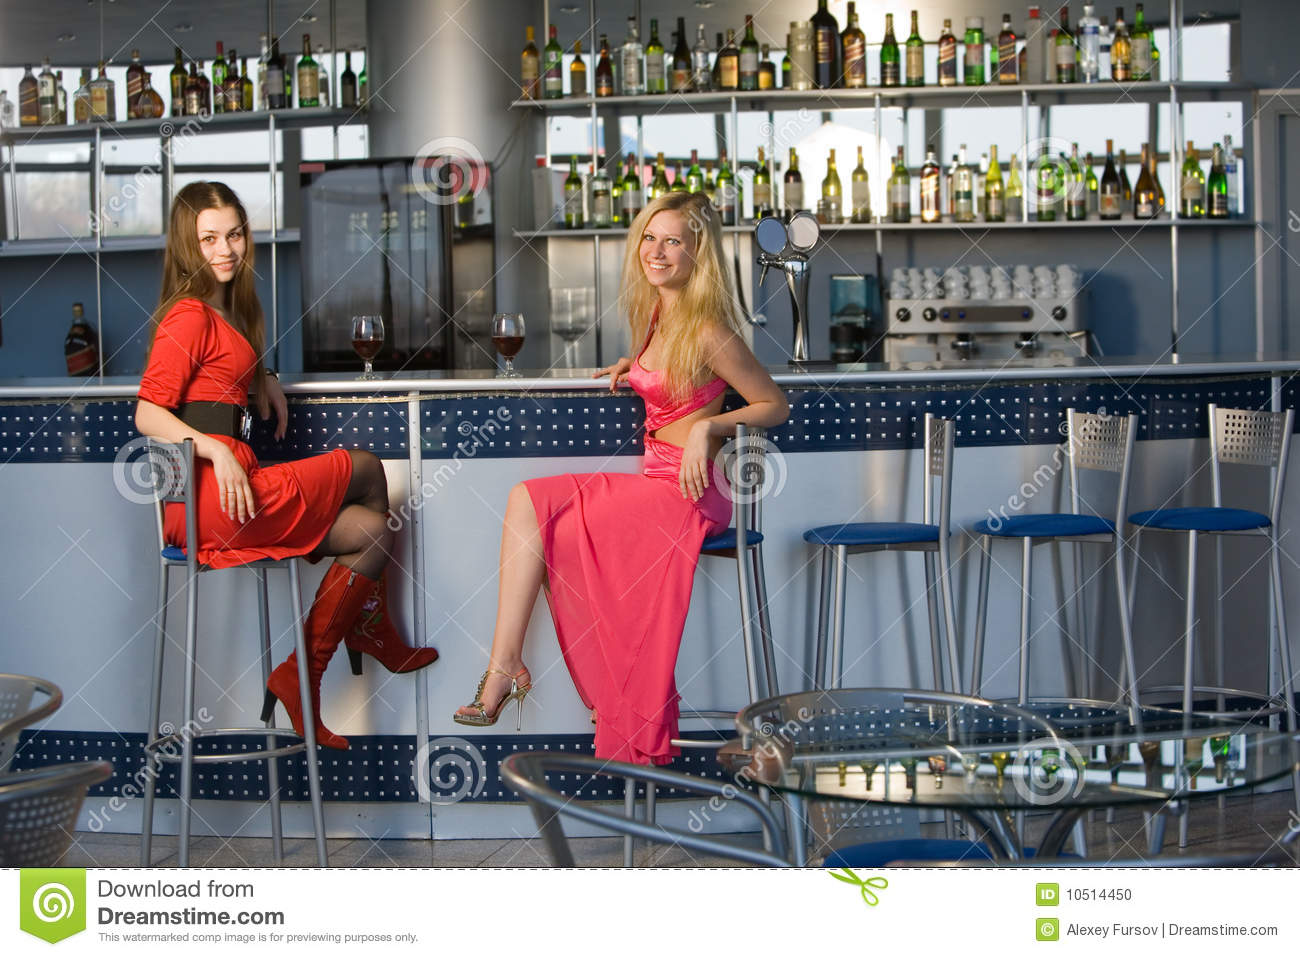 Two Young Ladies Sitting At Bar Counter Stock Photo  : two young ladies sitting bar counter 10514450 from dreamstime.com size 1300 x 957 jpeg 185kB